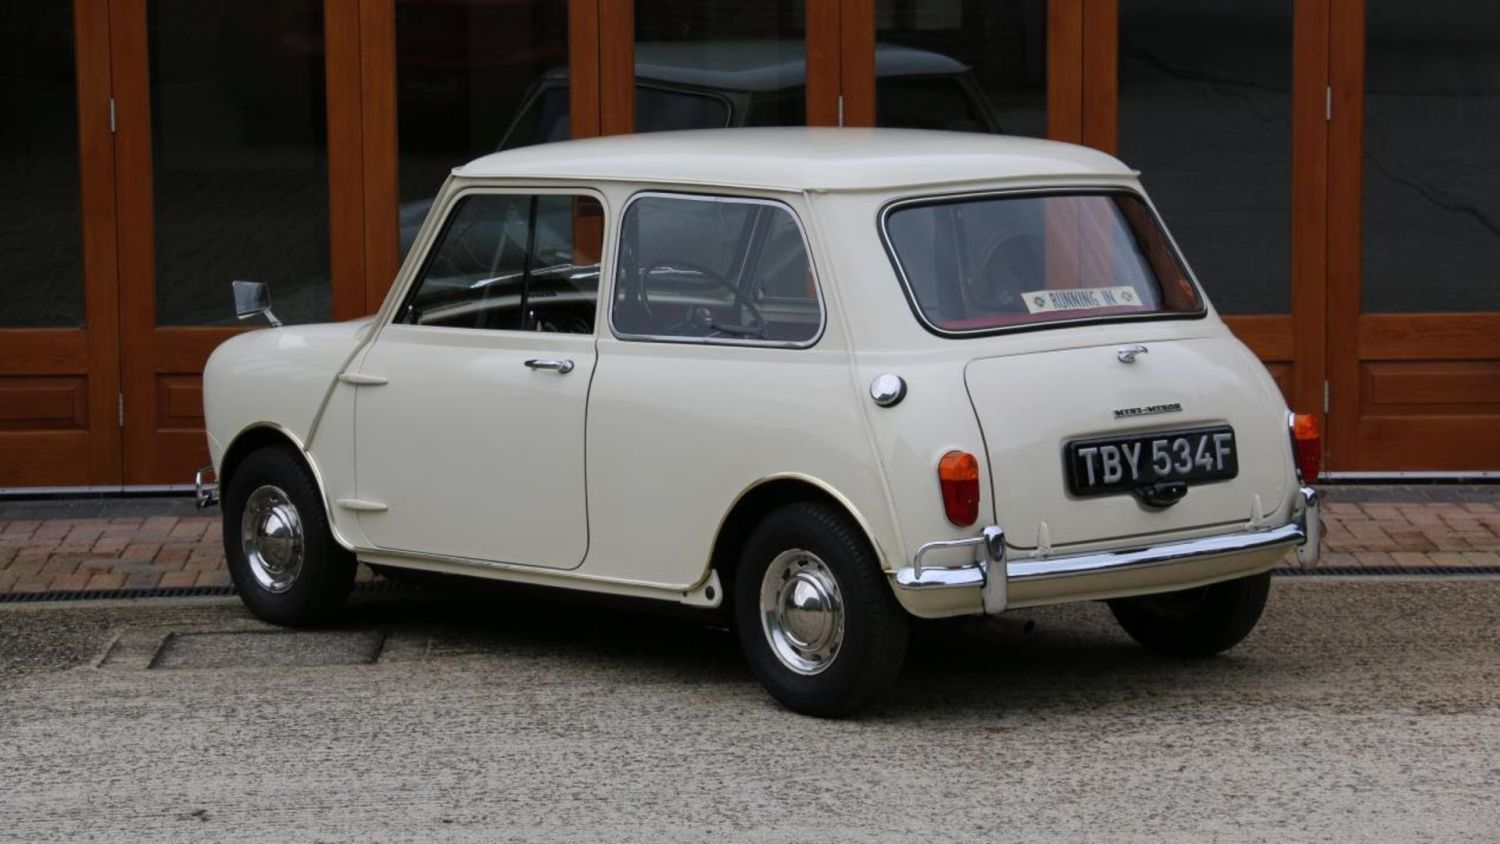 The world's most original Mini is for sale